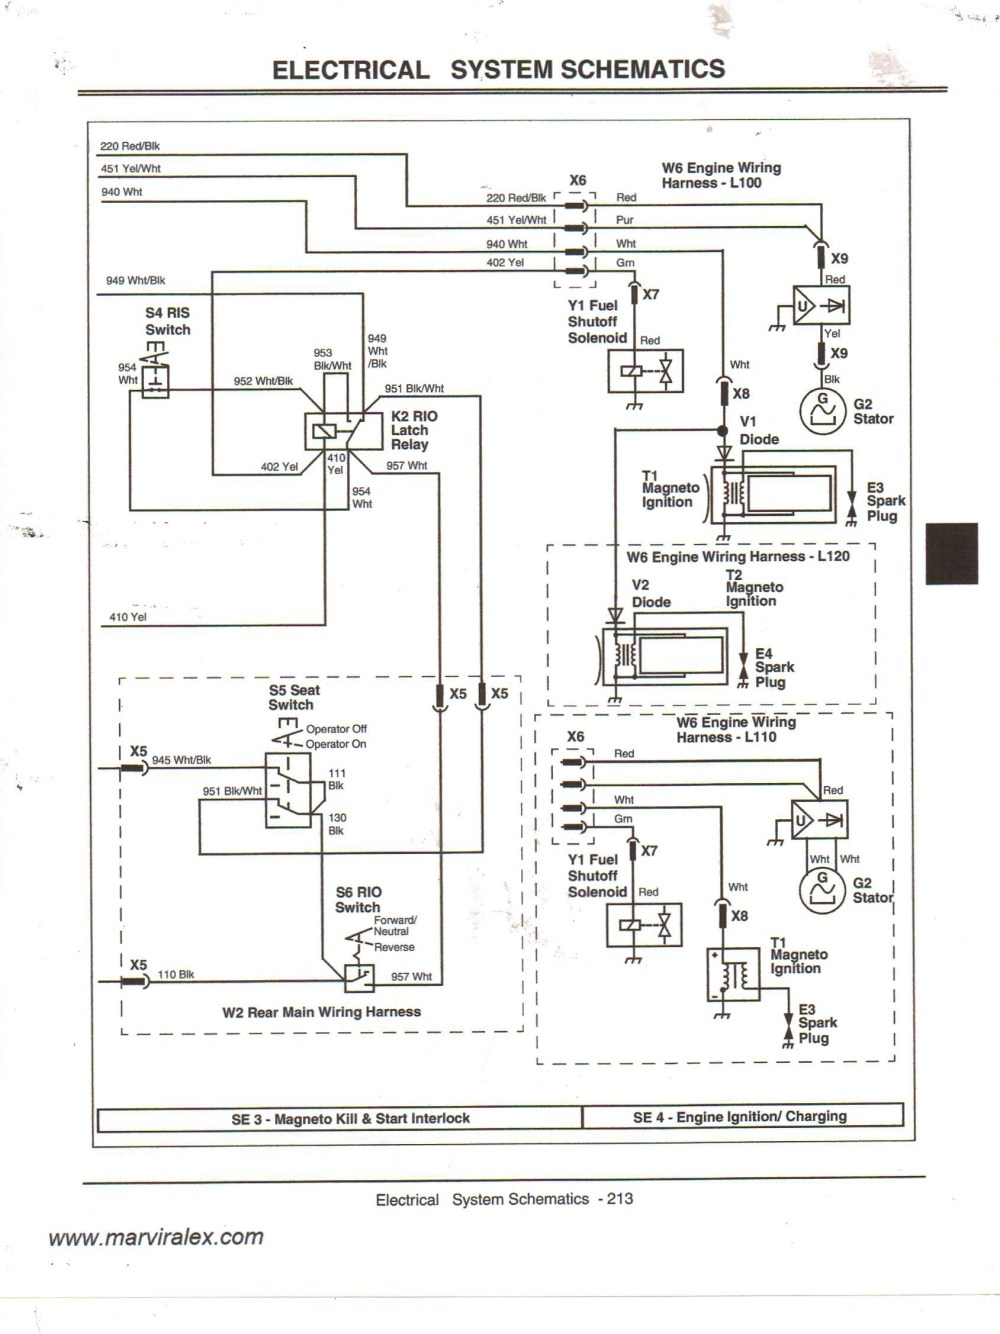 medium resolution of for gator 4x2 wiring diagram simple wiring schema john deere gator 6x4 diagram john deere gator plow wiring diagram